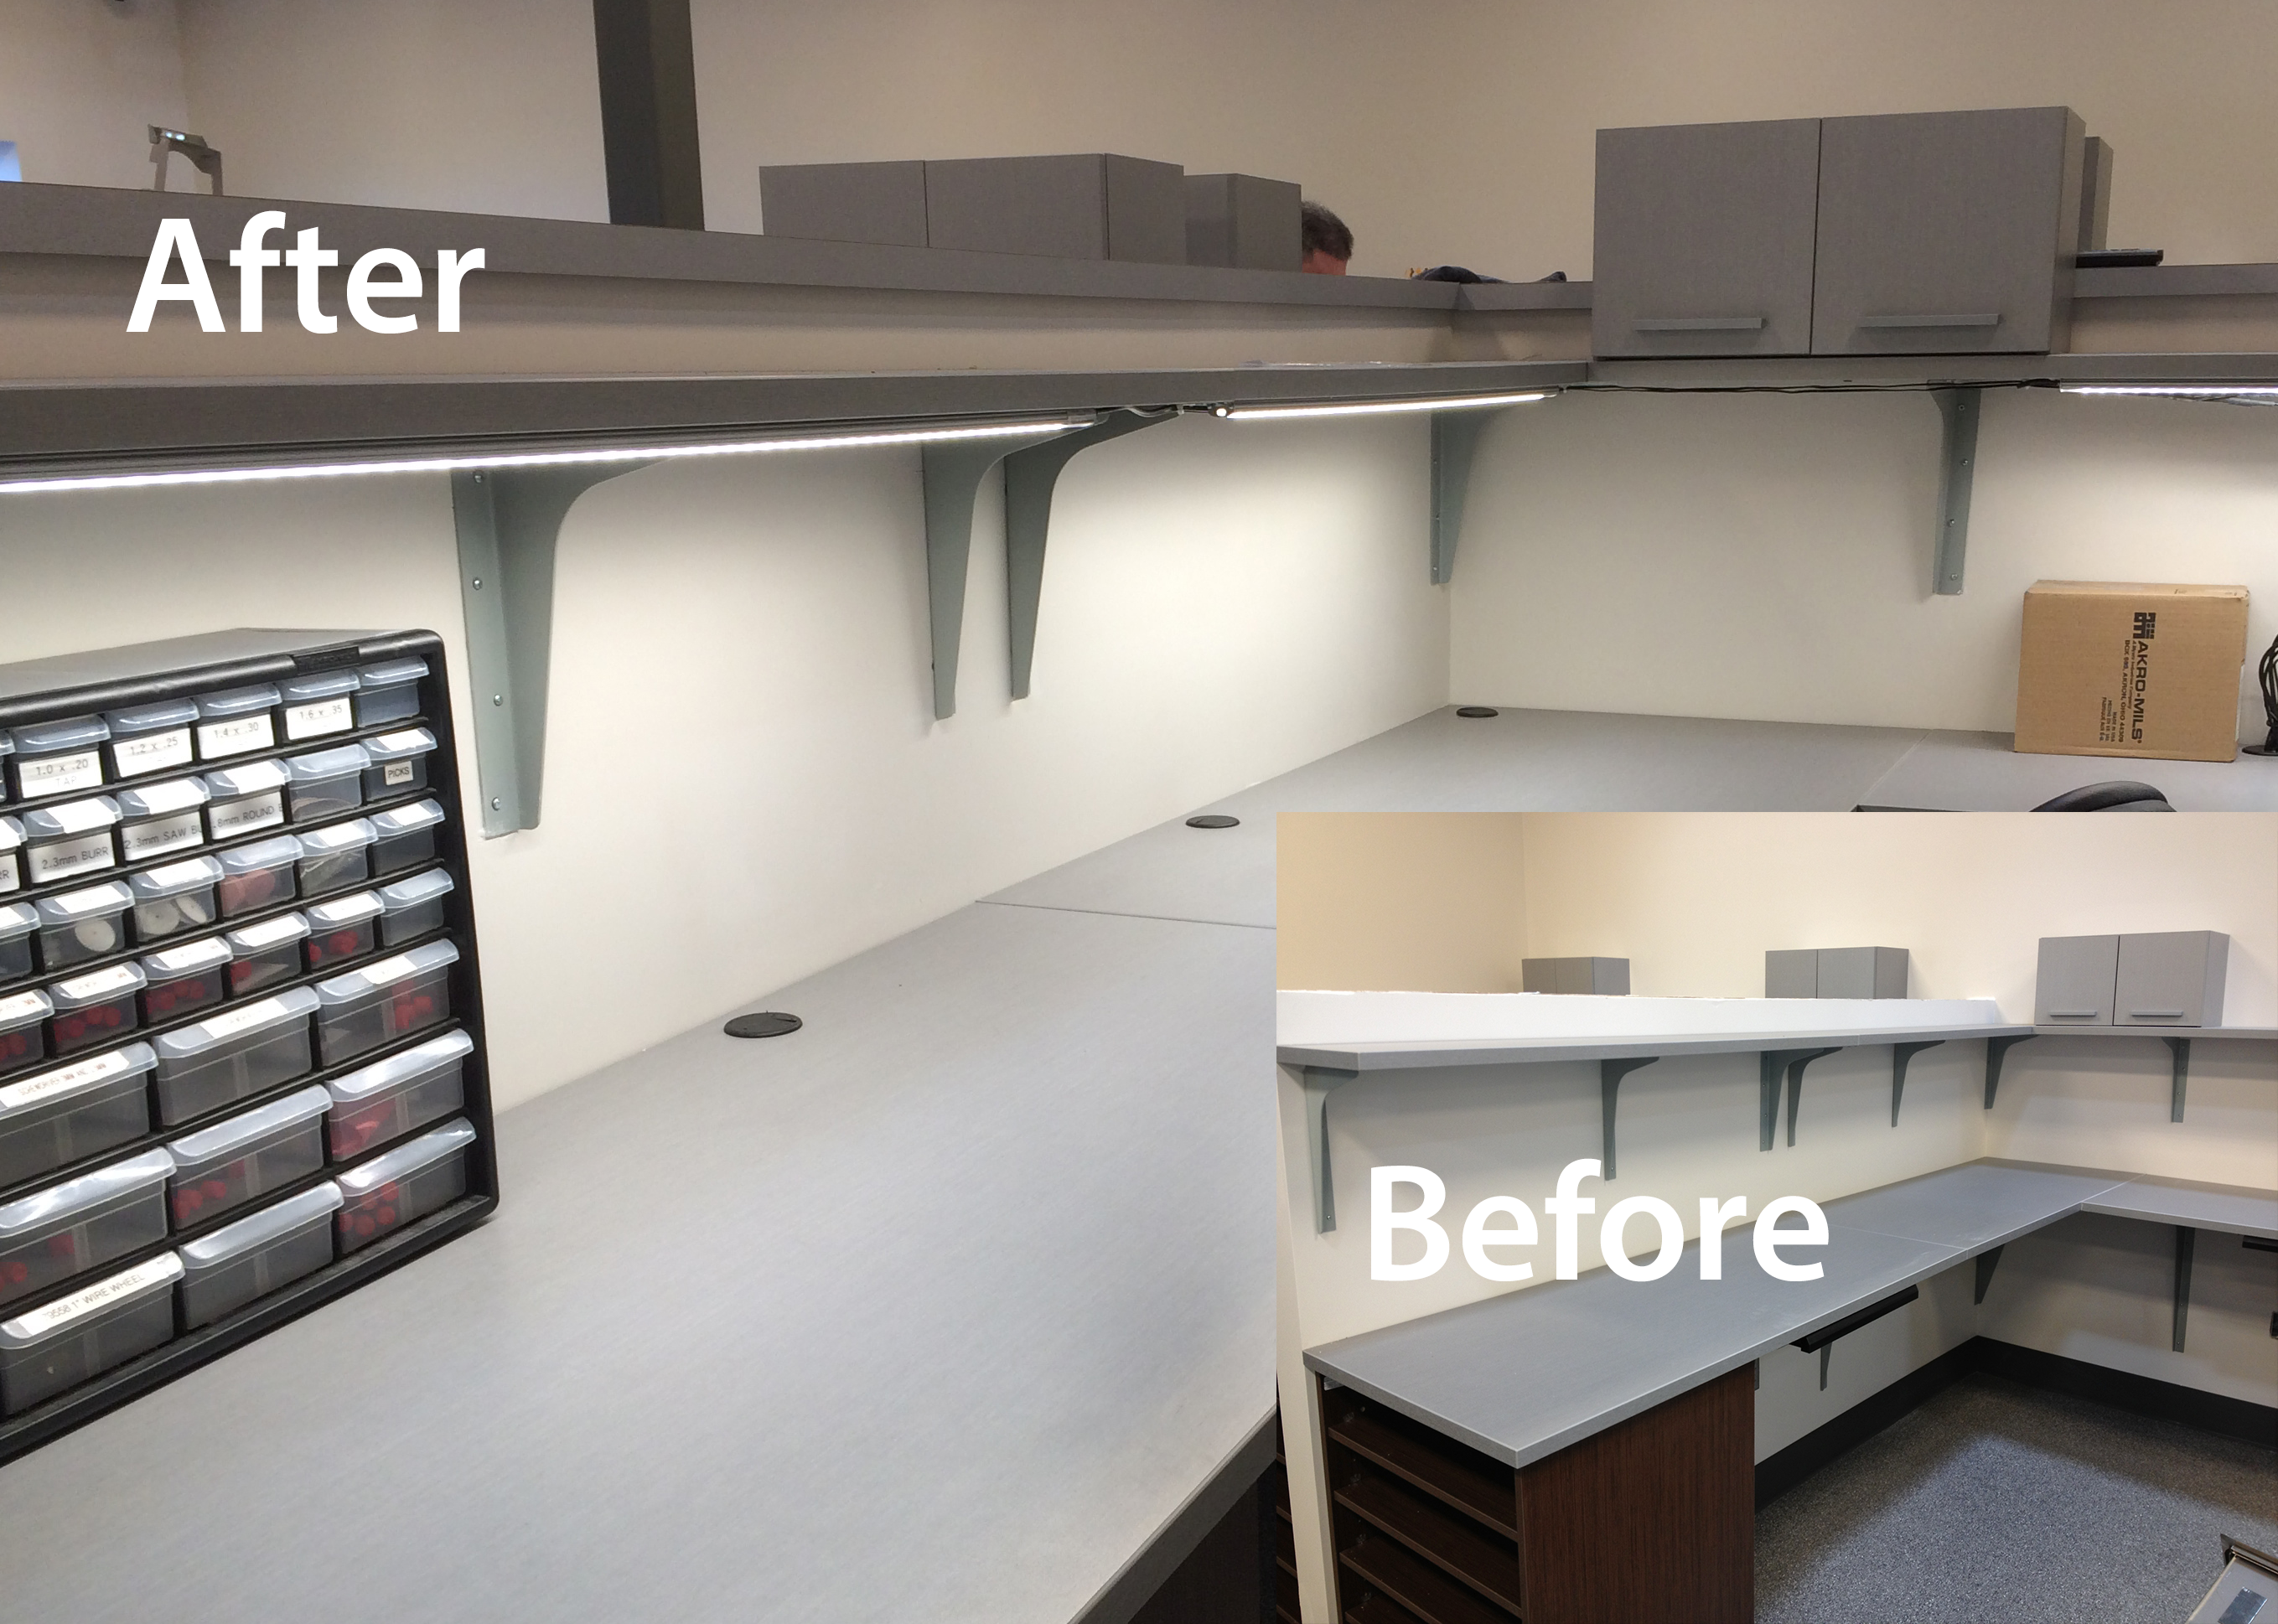 Workstation Lighting Intended Unparalleled Customer Support Workstation Custom Led Lighting Retrofit Solution